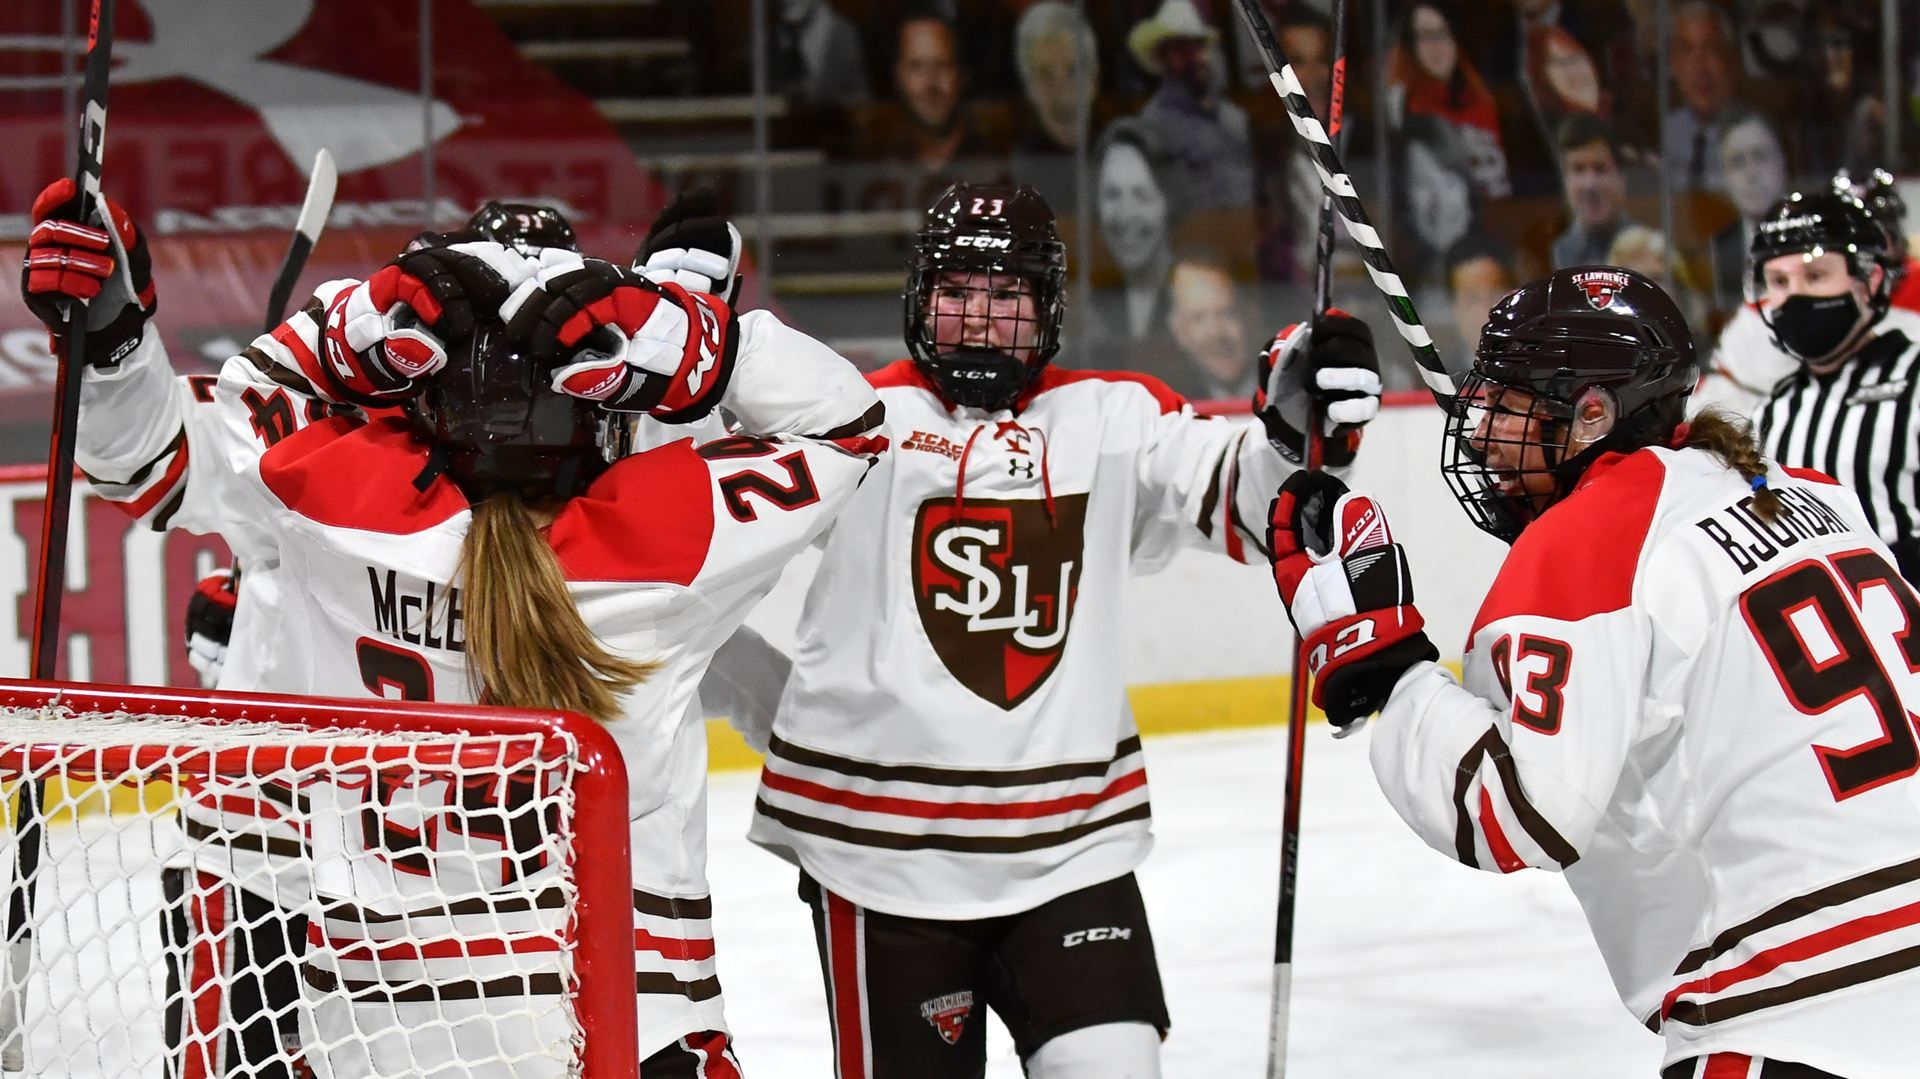 NCAA Women's Hockey: What to Watch, WCHA Semifinals, CHA and Hockey East finals